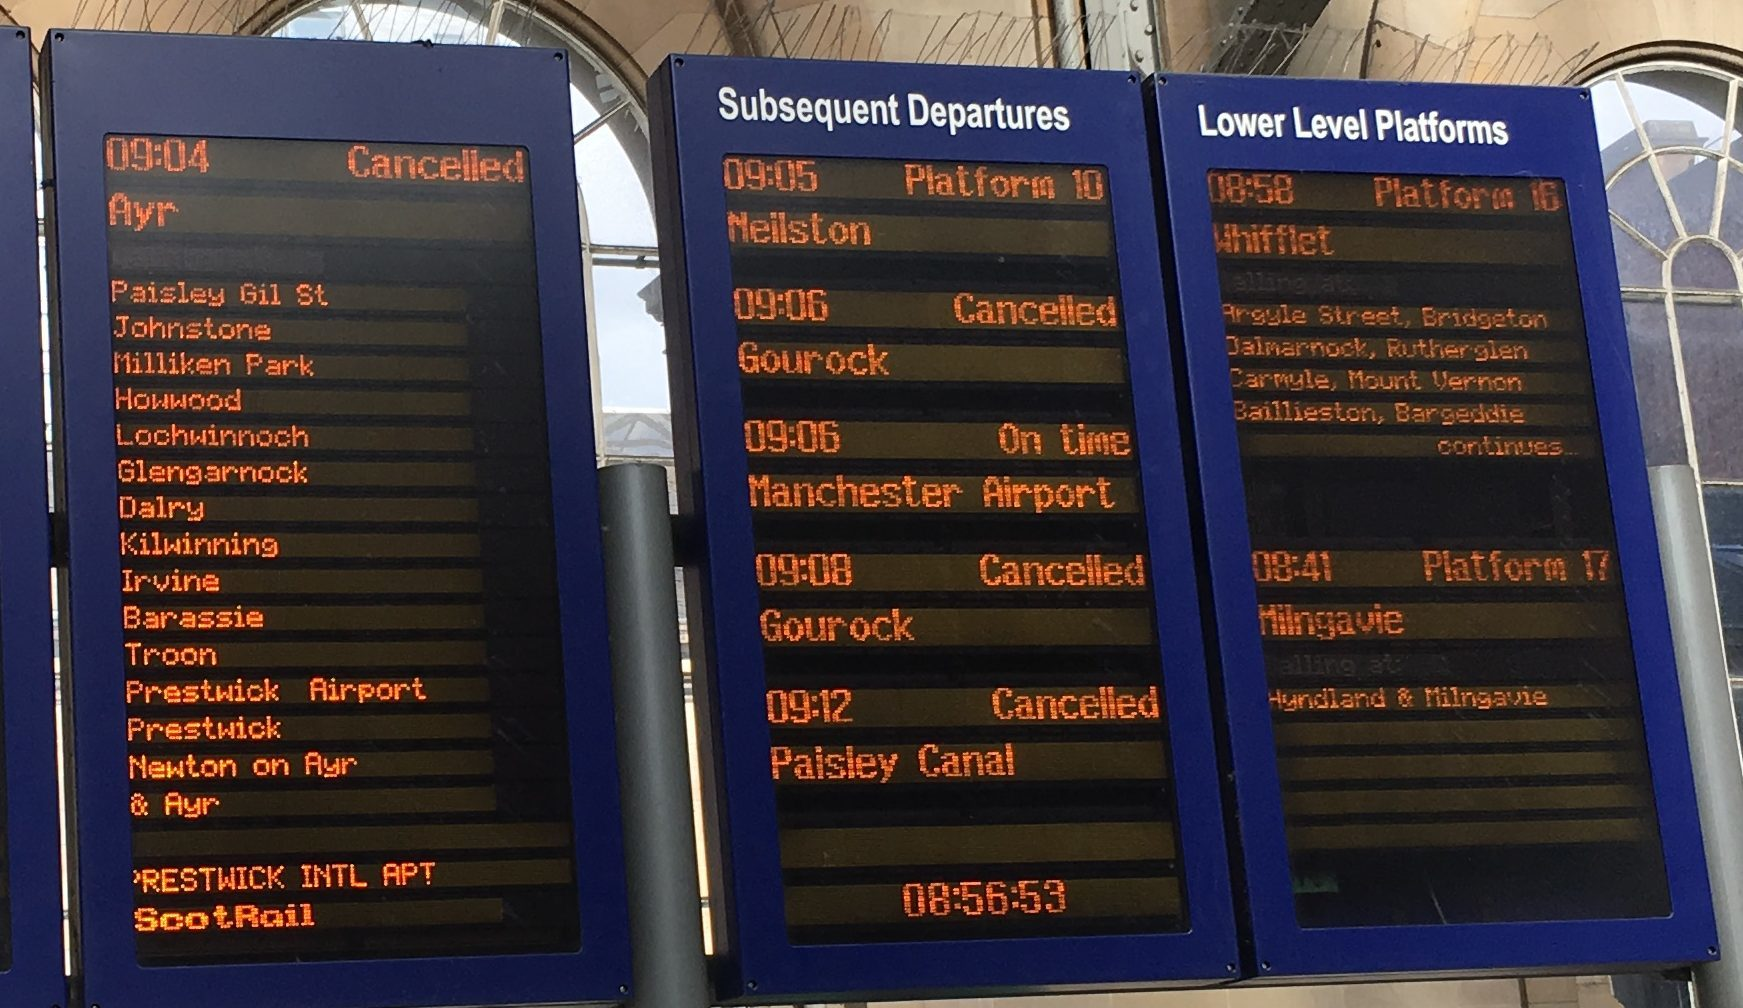 Services cancelled